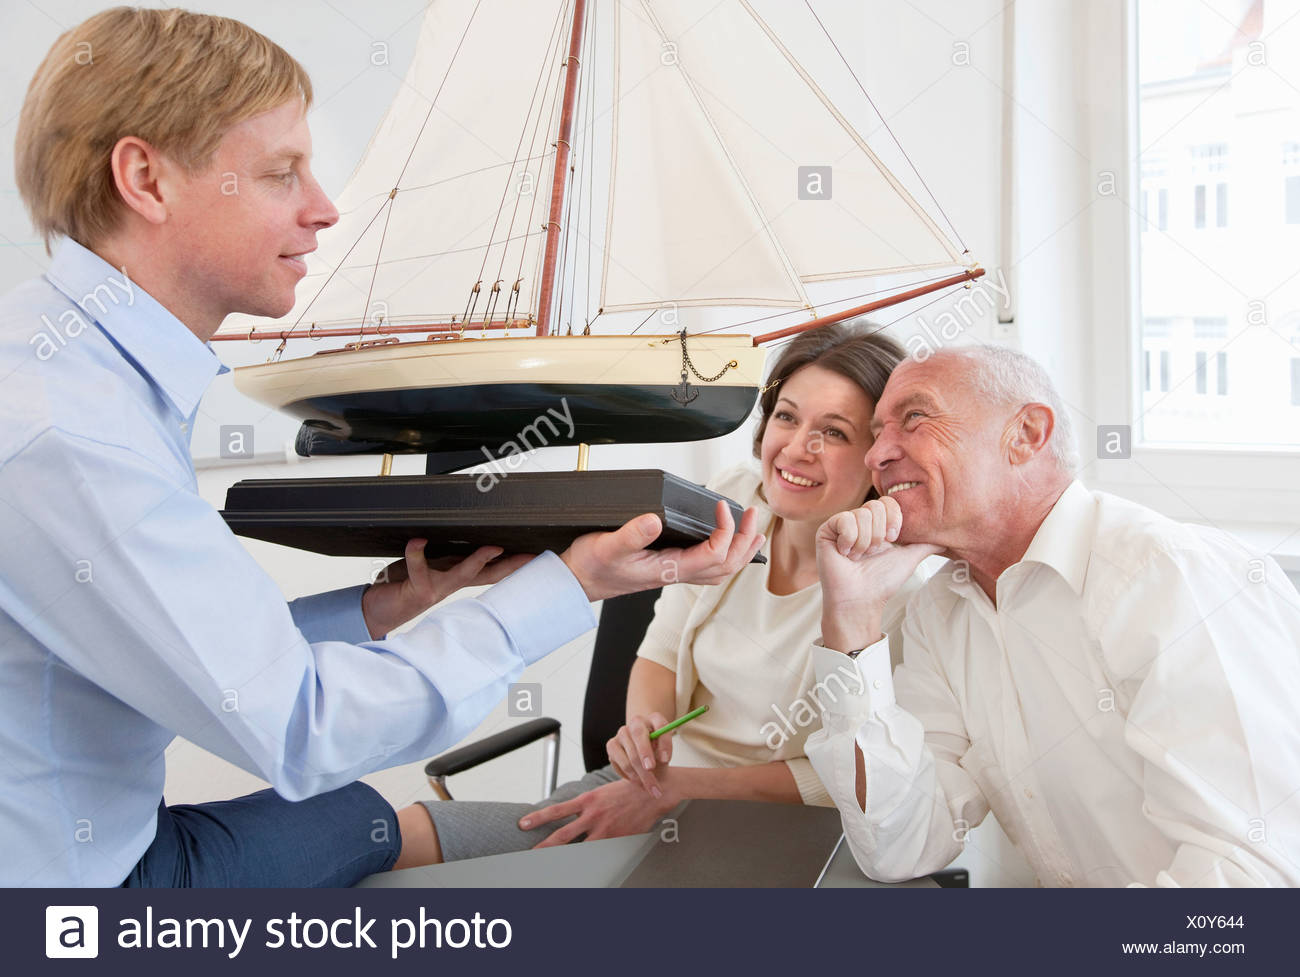 Businesspeople looking at model ship - Stock Image